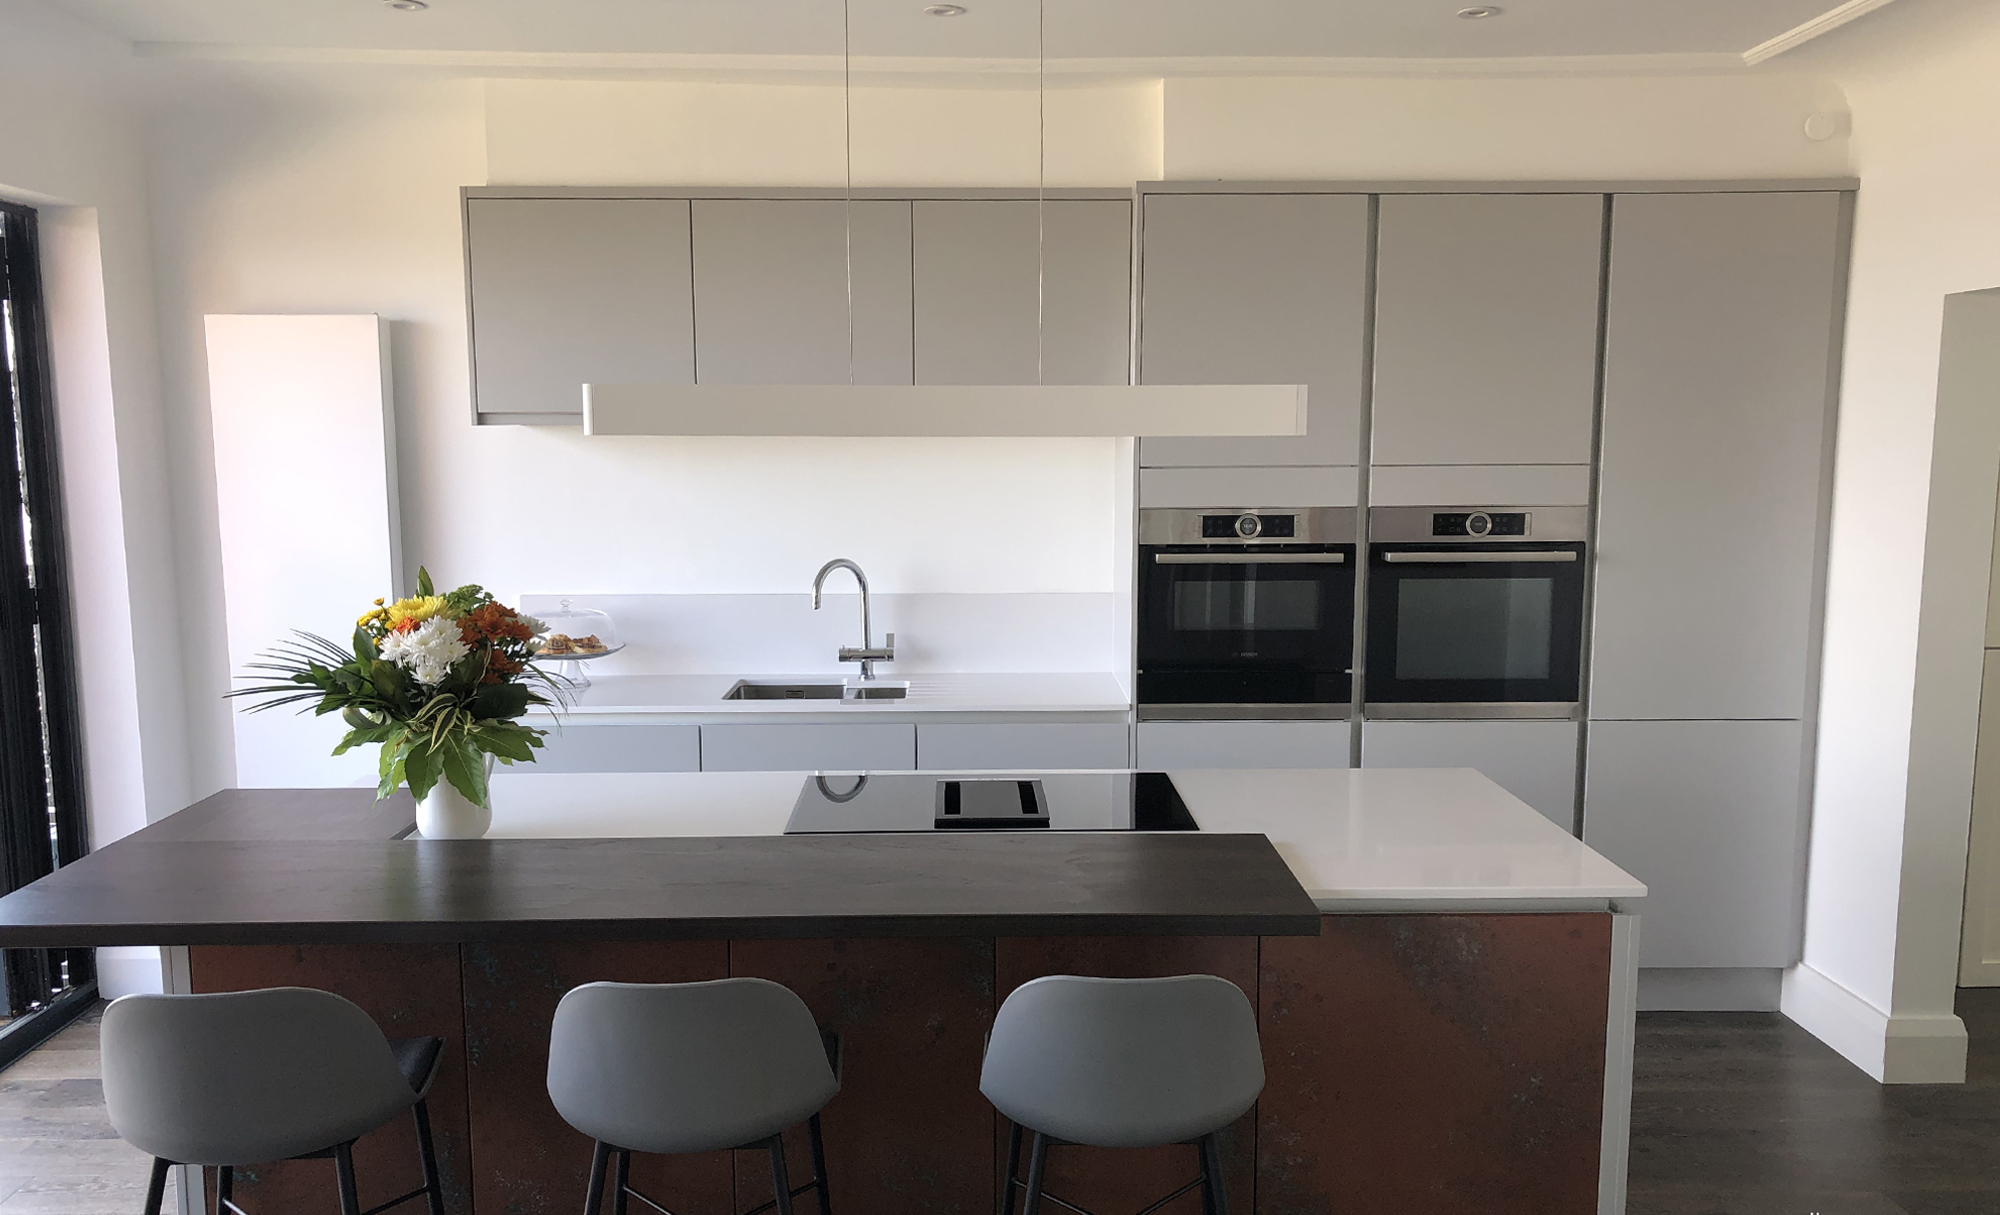 Zola Matte Kitchen by Mill Town Kitchens in Liverpool